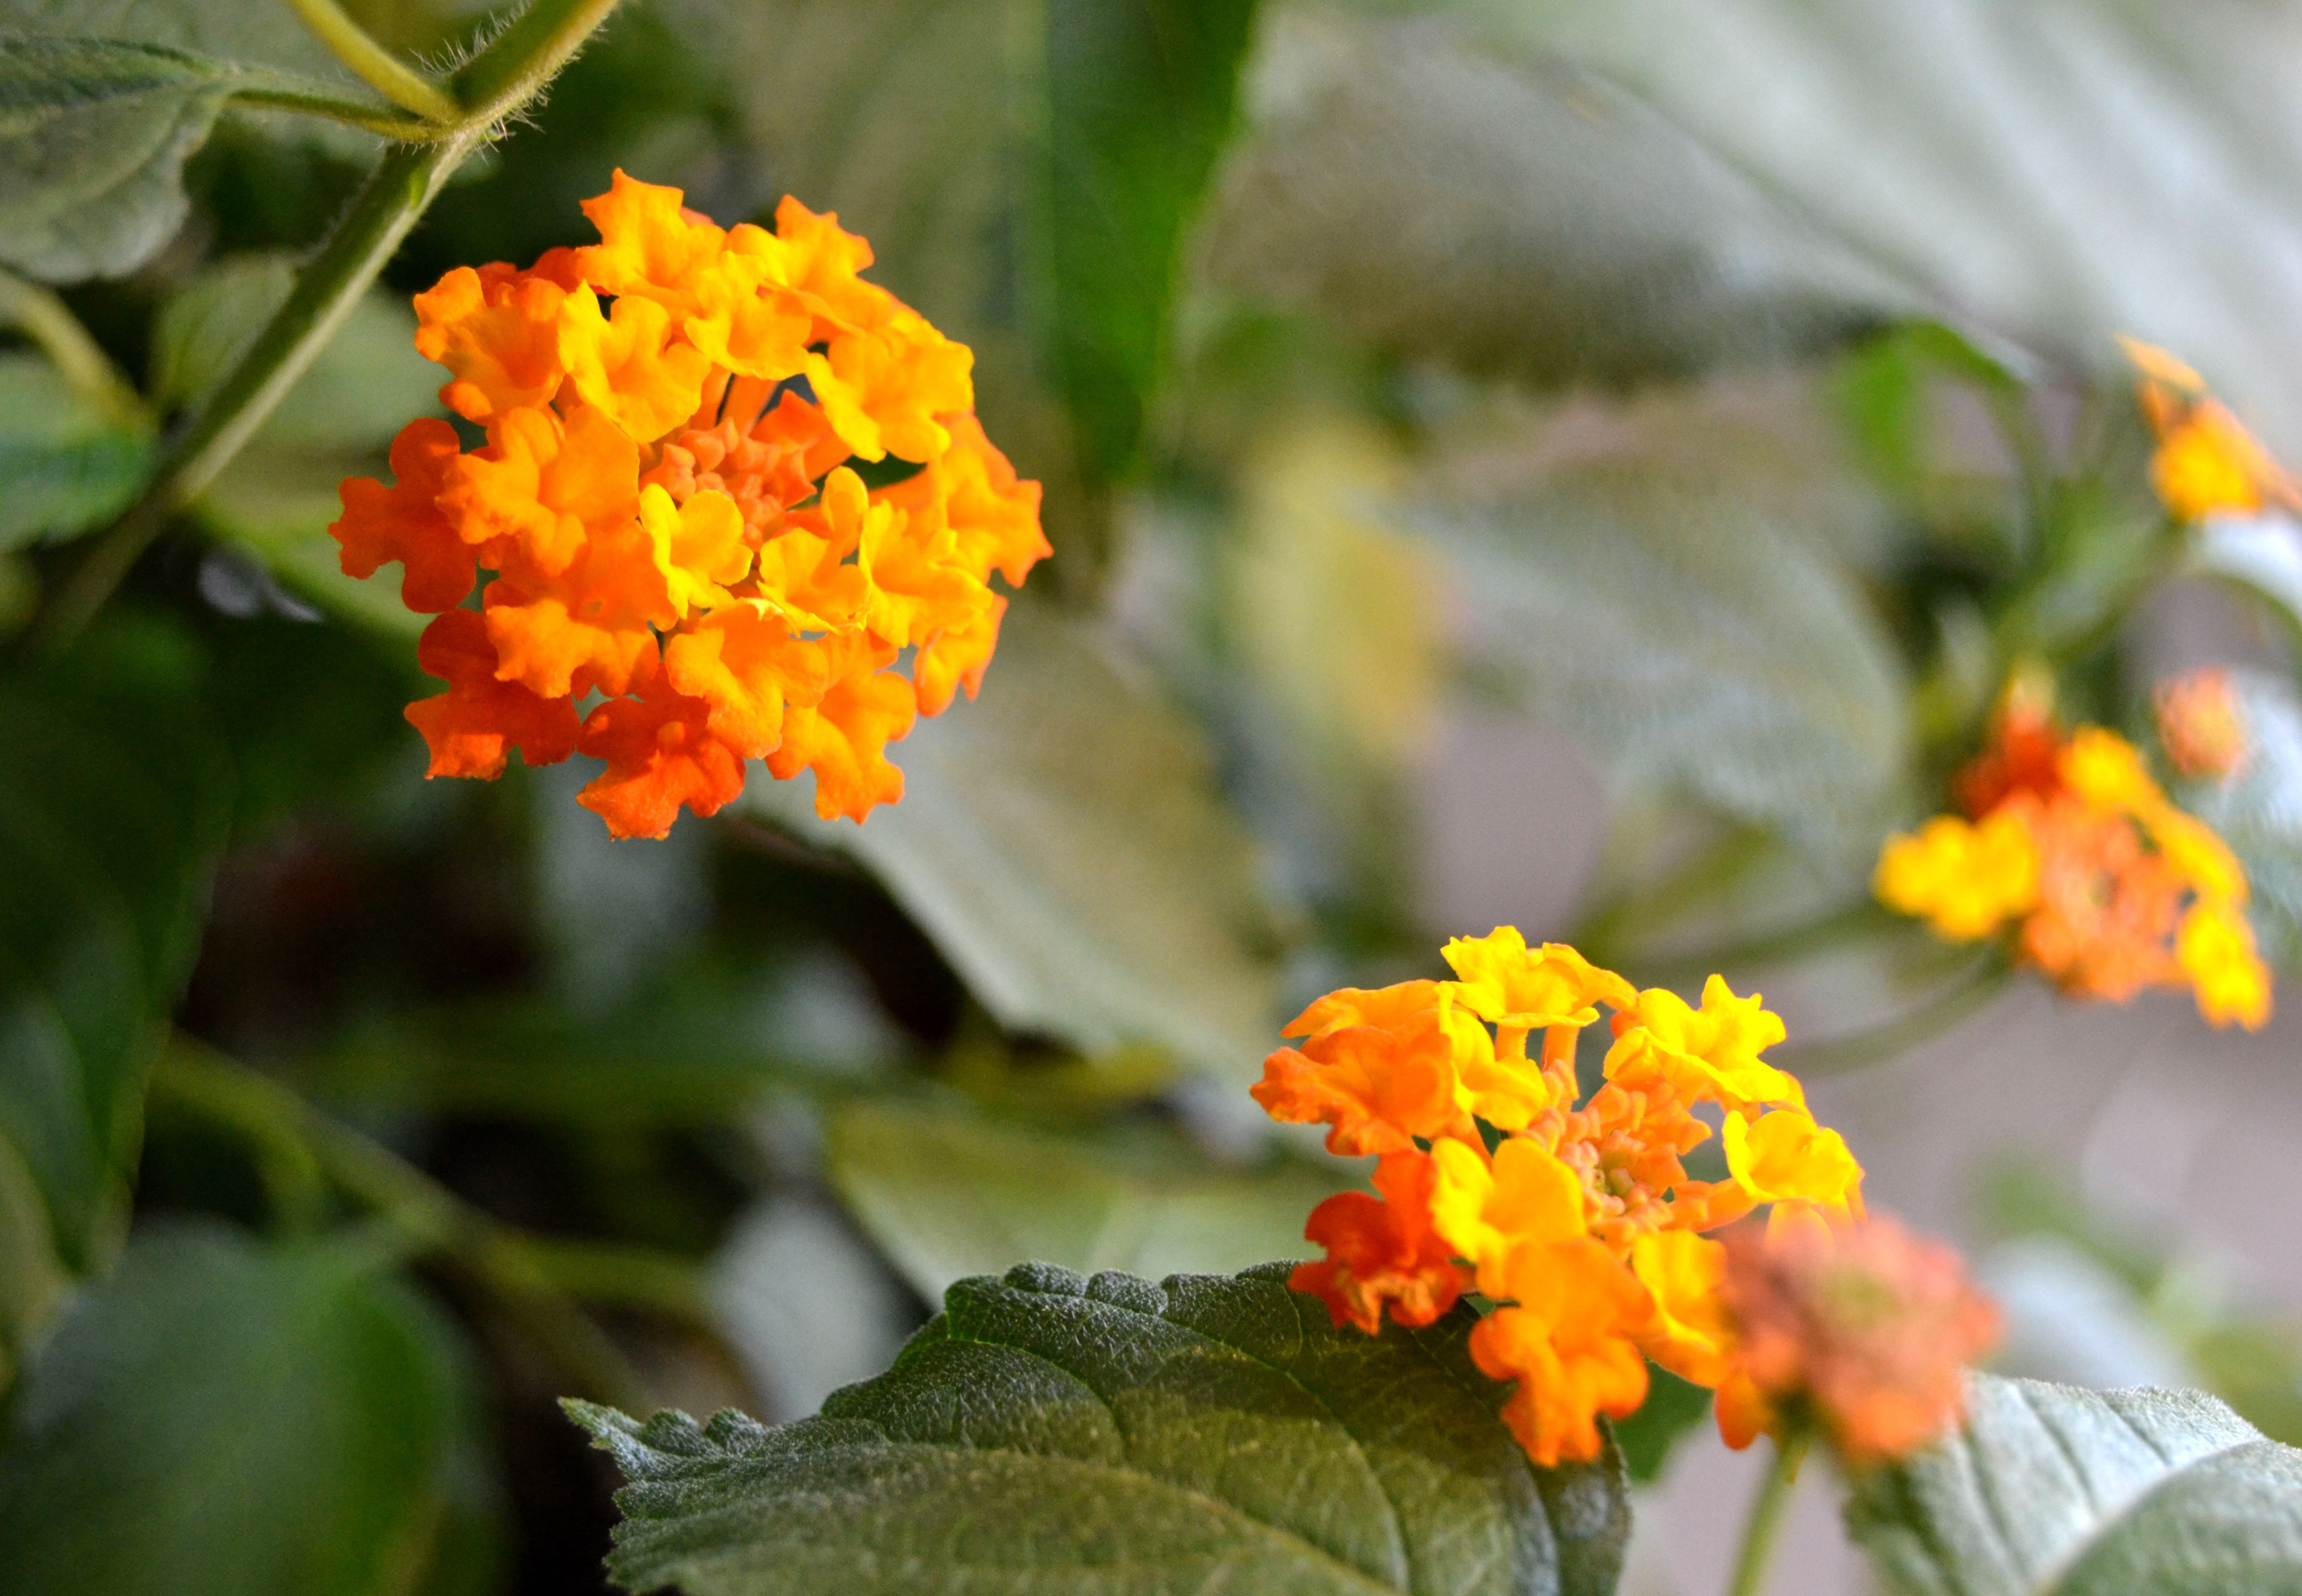 10 Great Plants For Attracting Hummingbirds